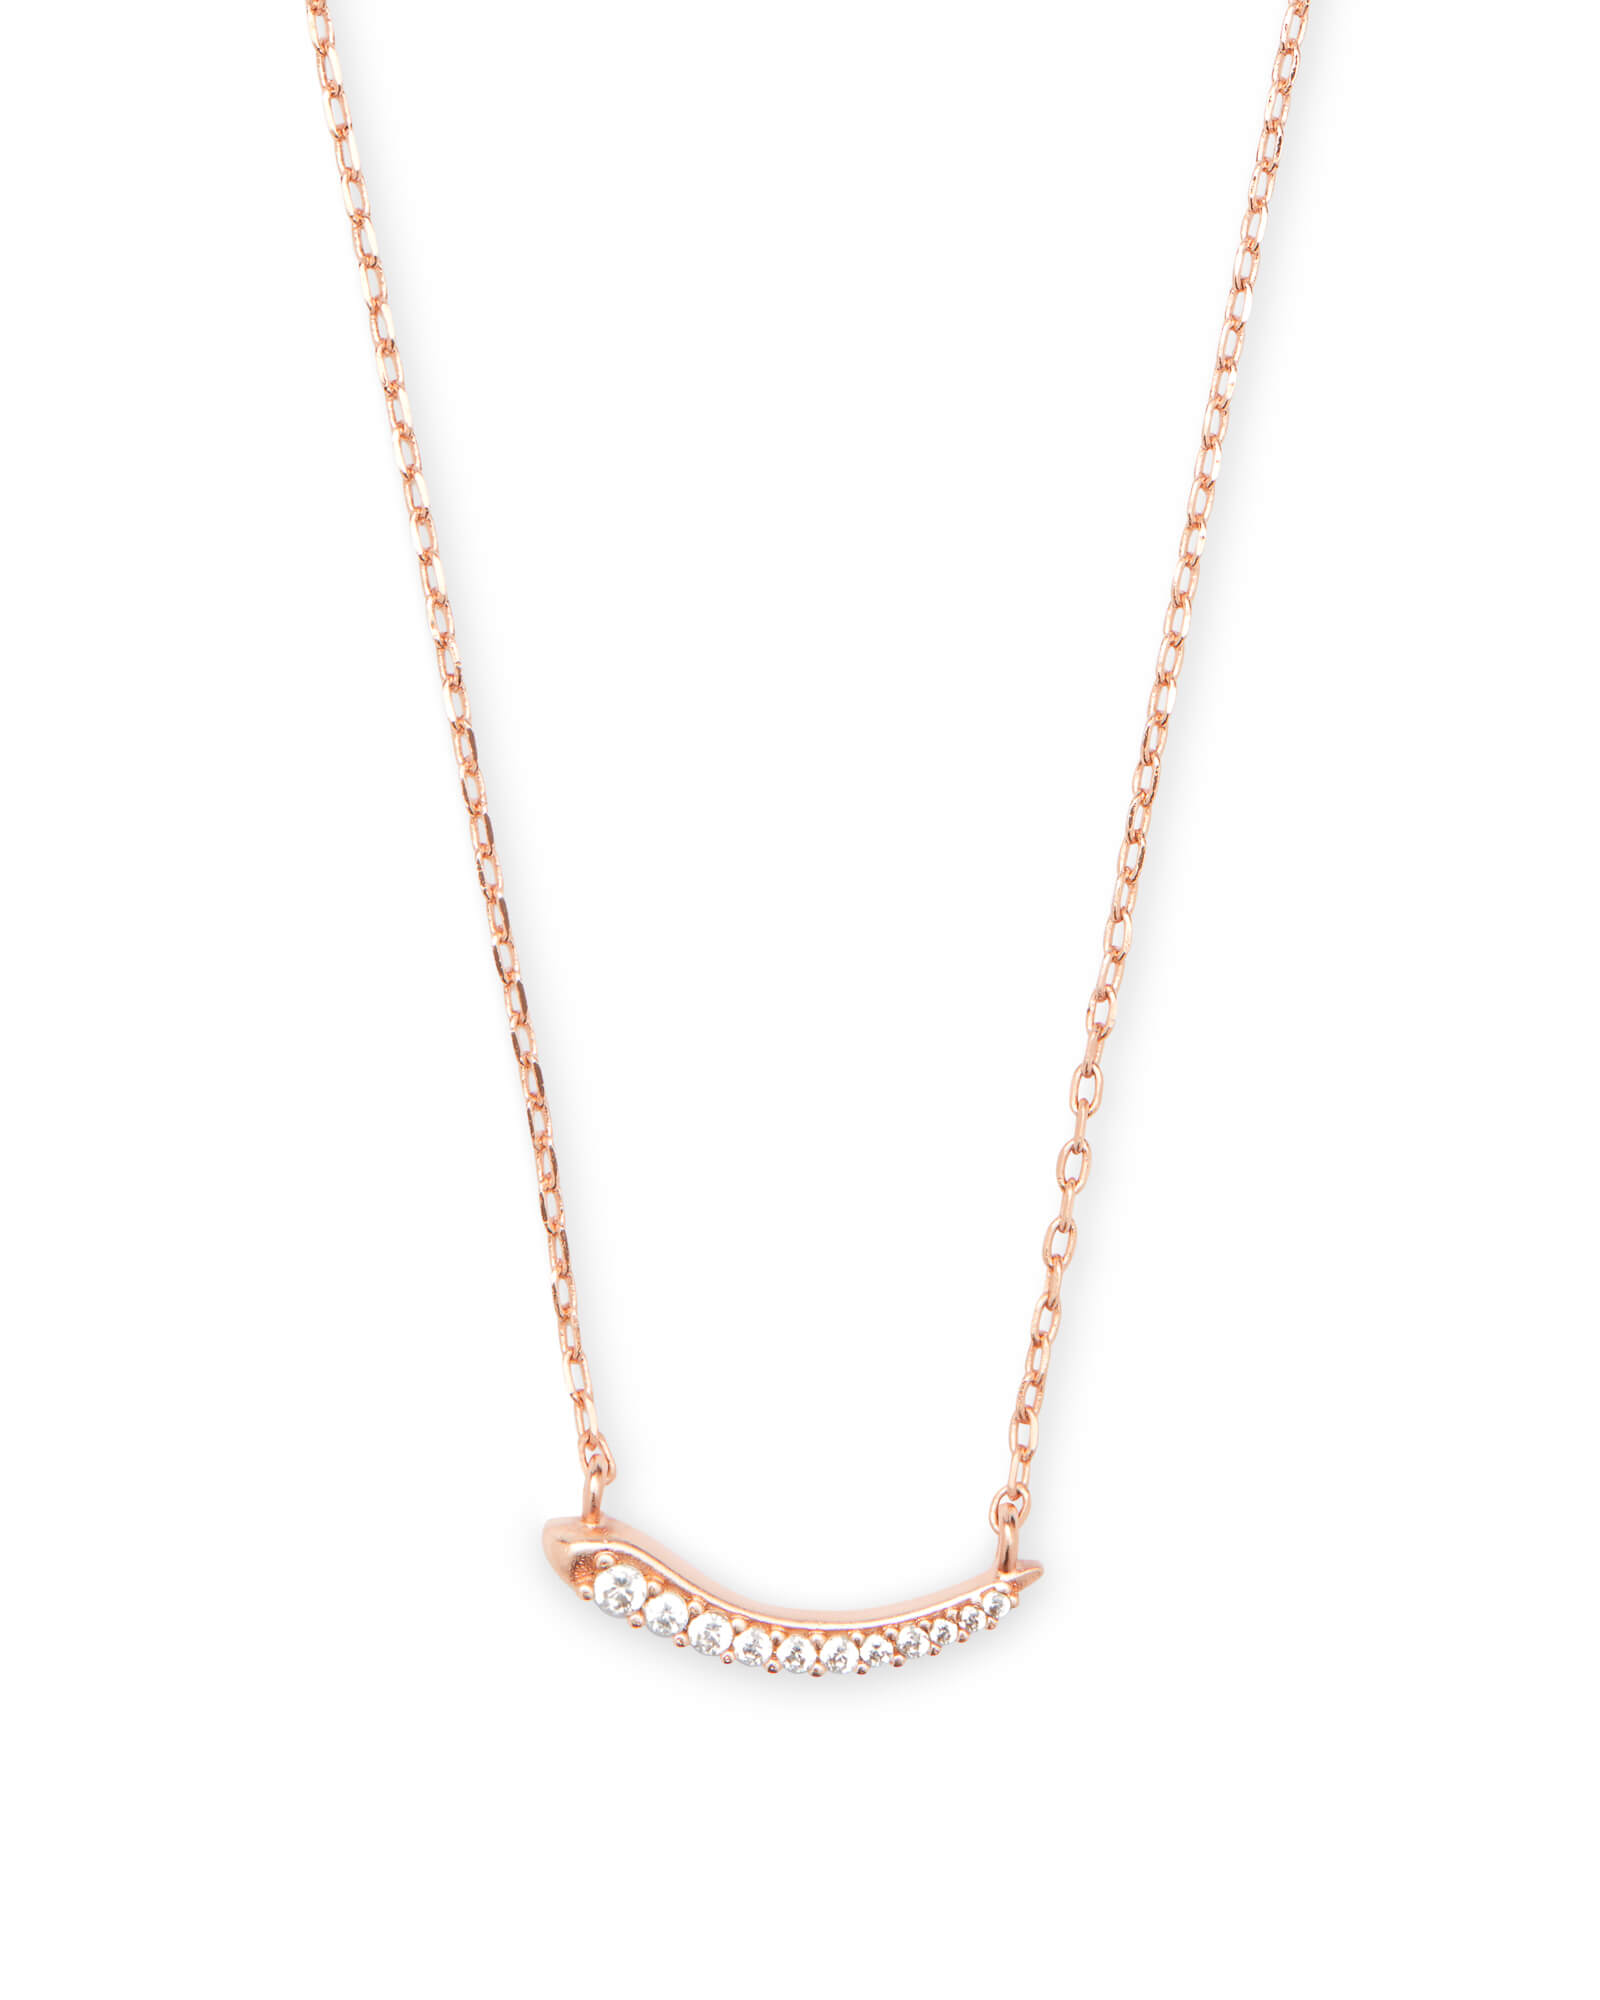 Whitlee Pendant Necklace in Rose Gold